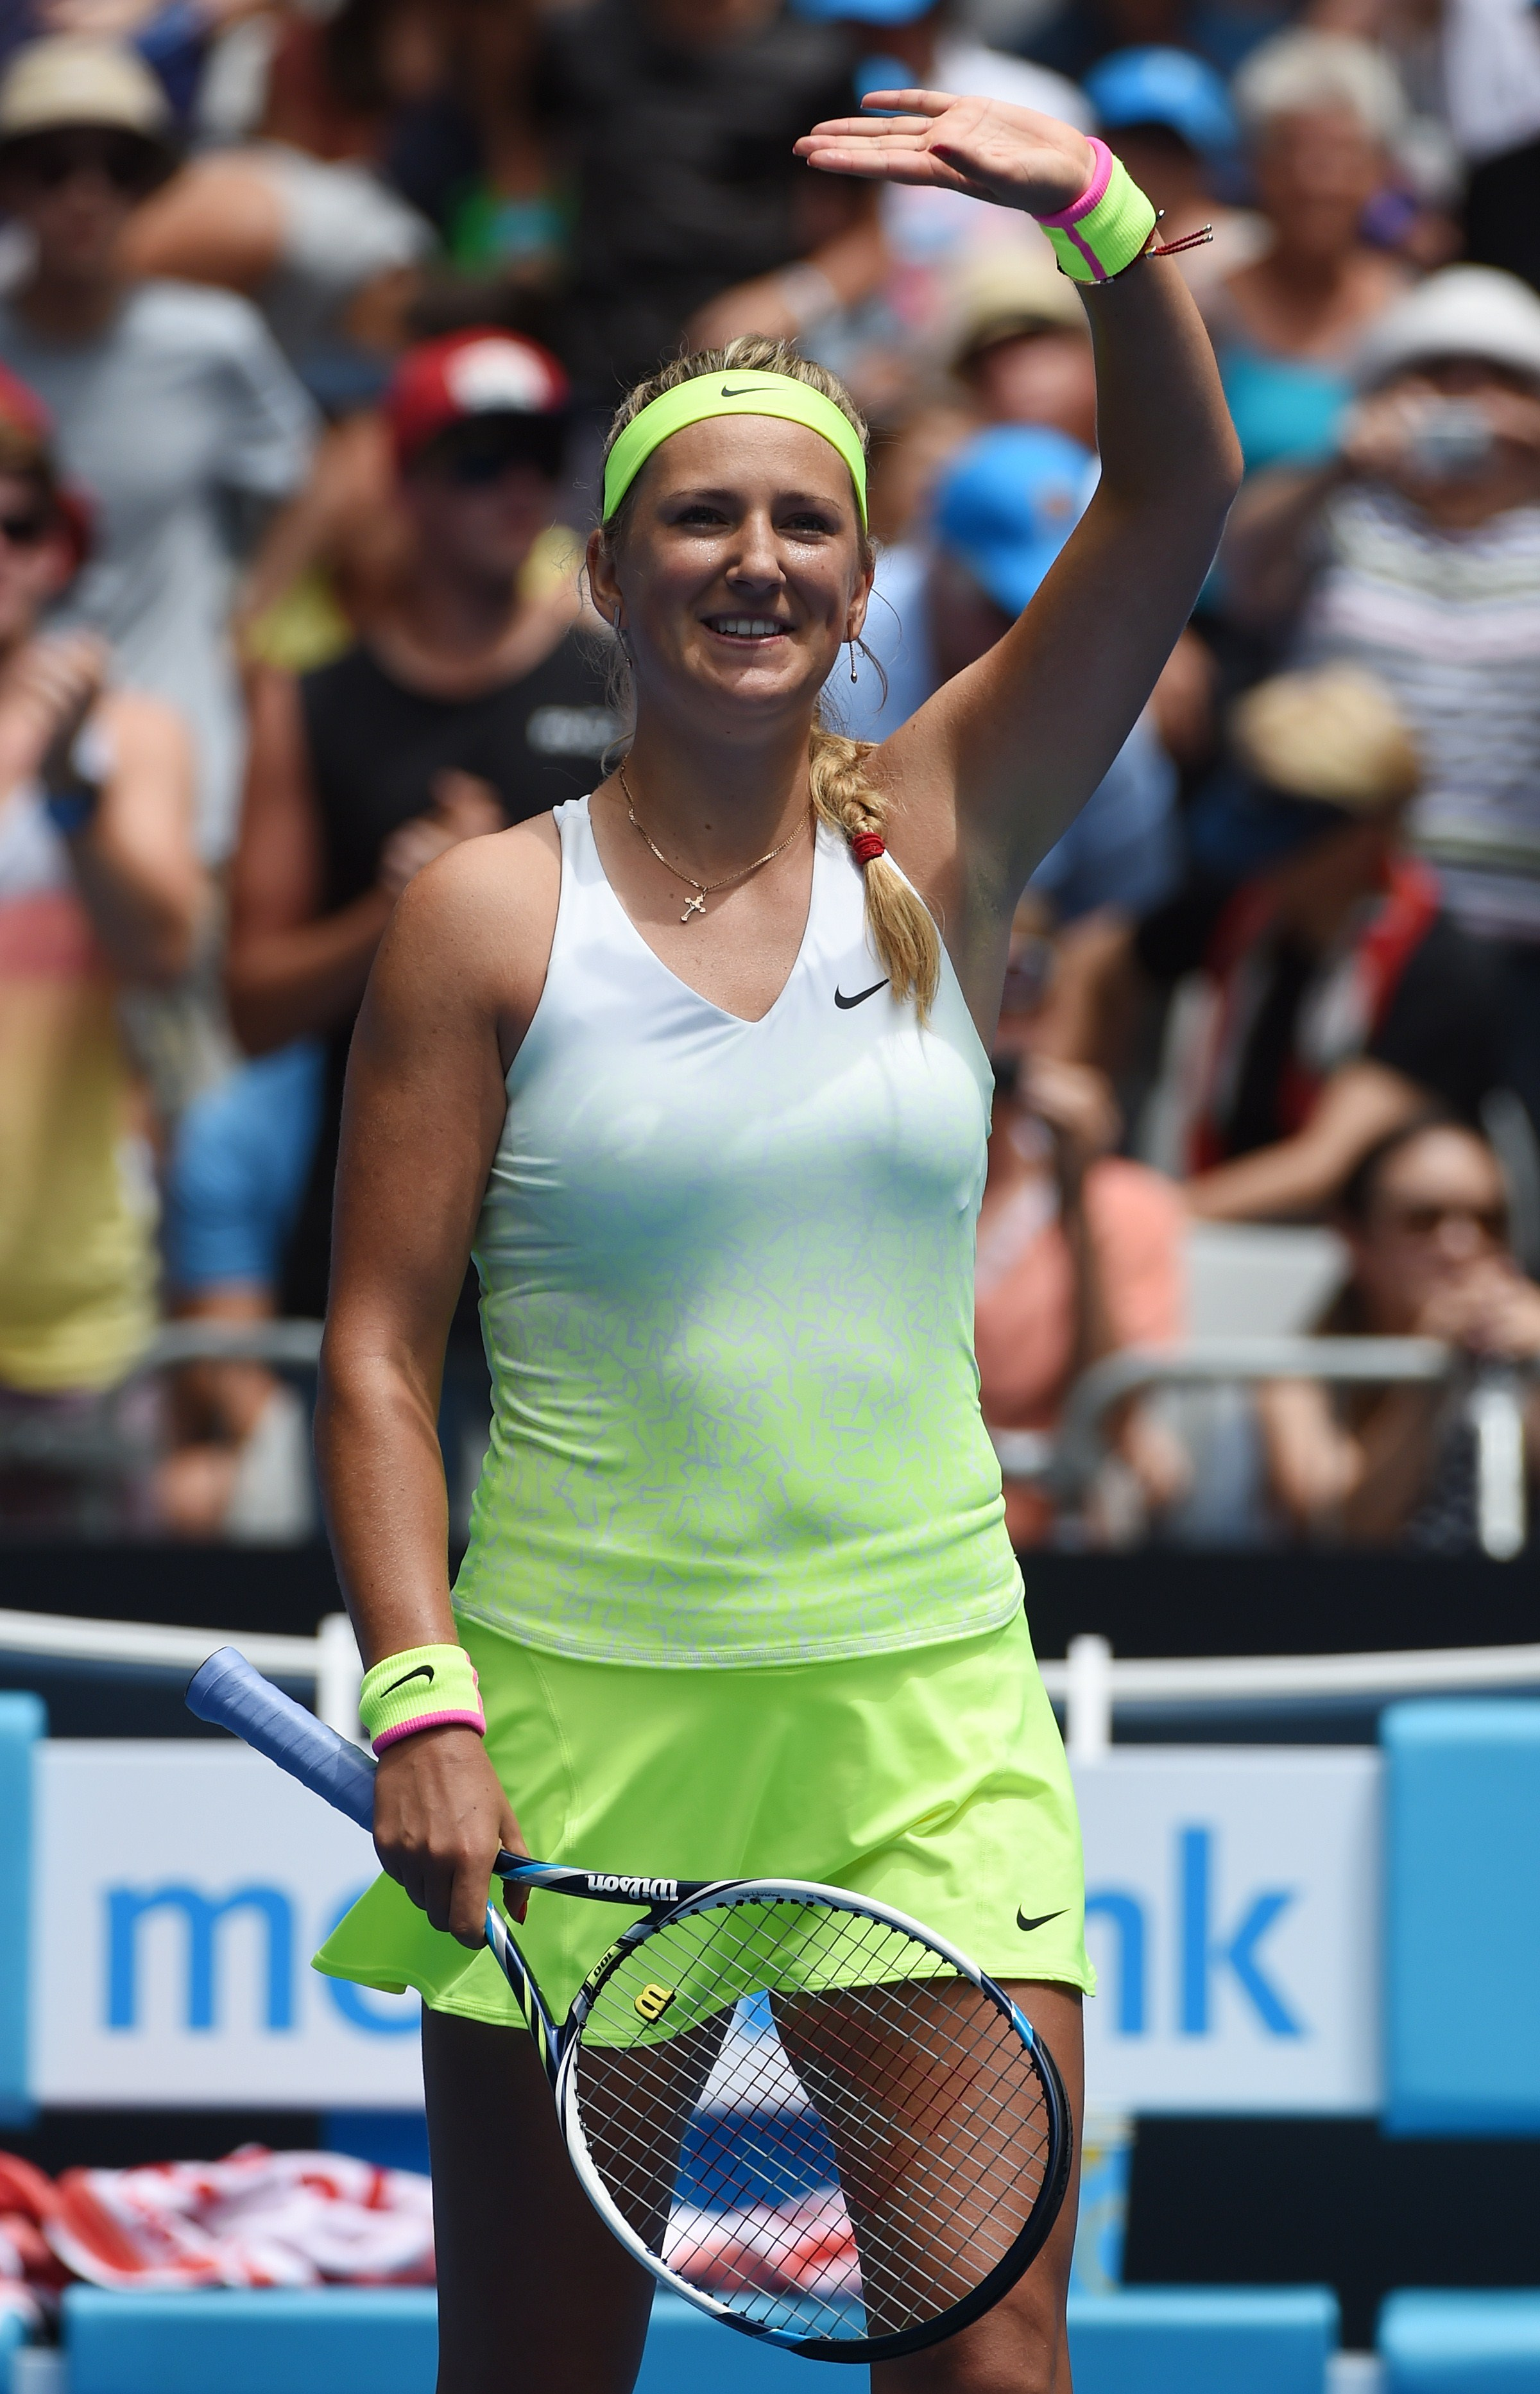 It's the women's version of Kyrgios' kit. And we like it.